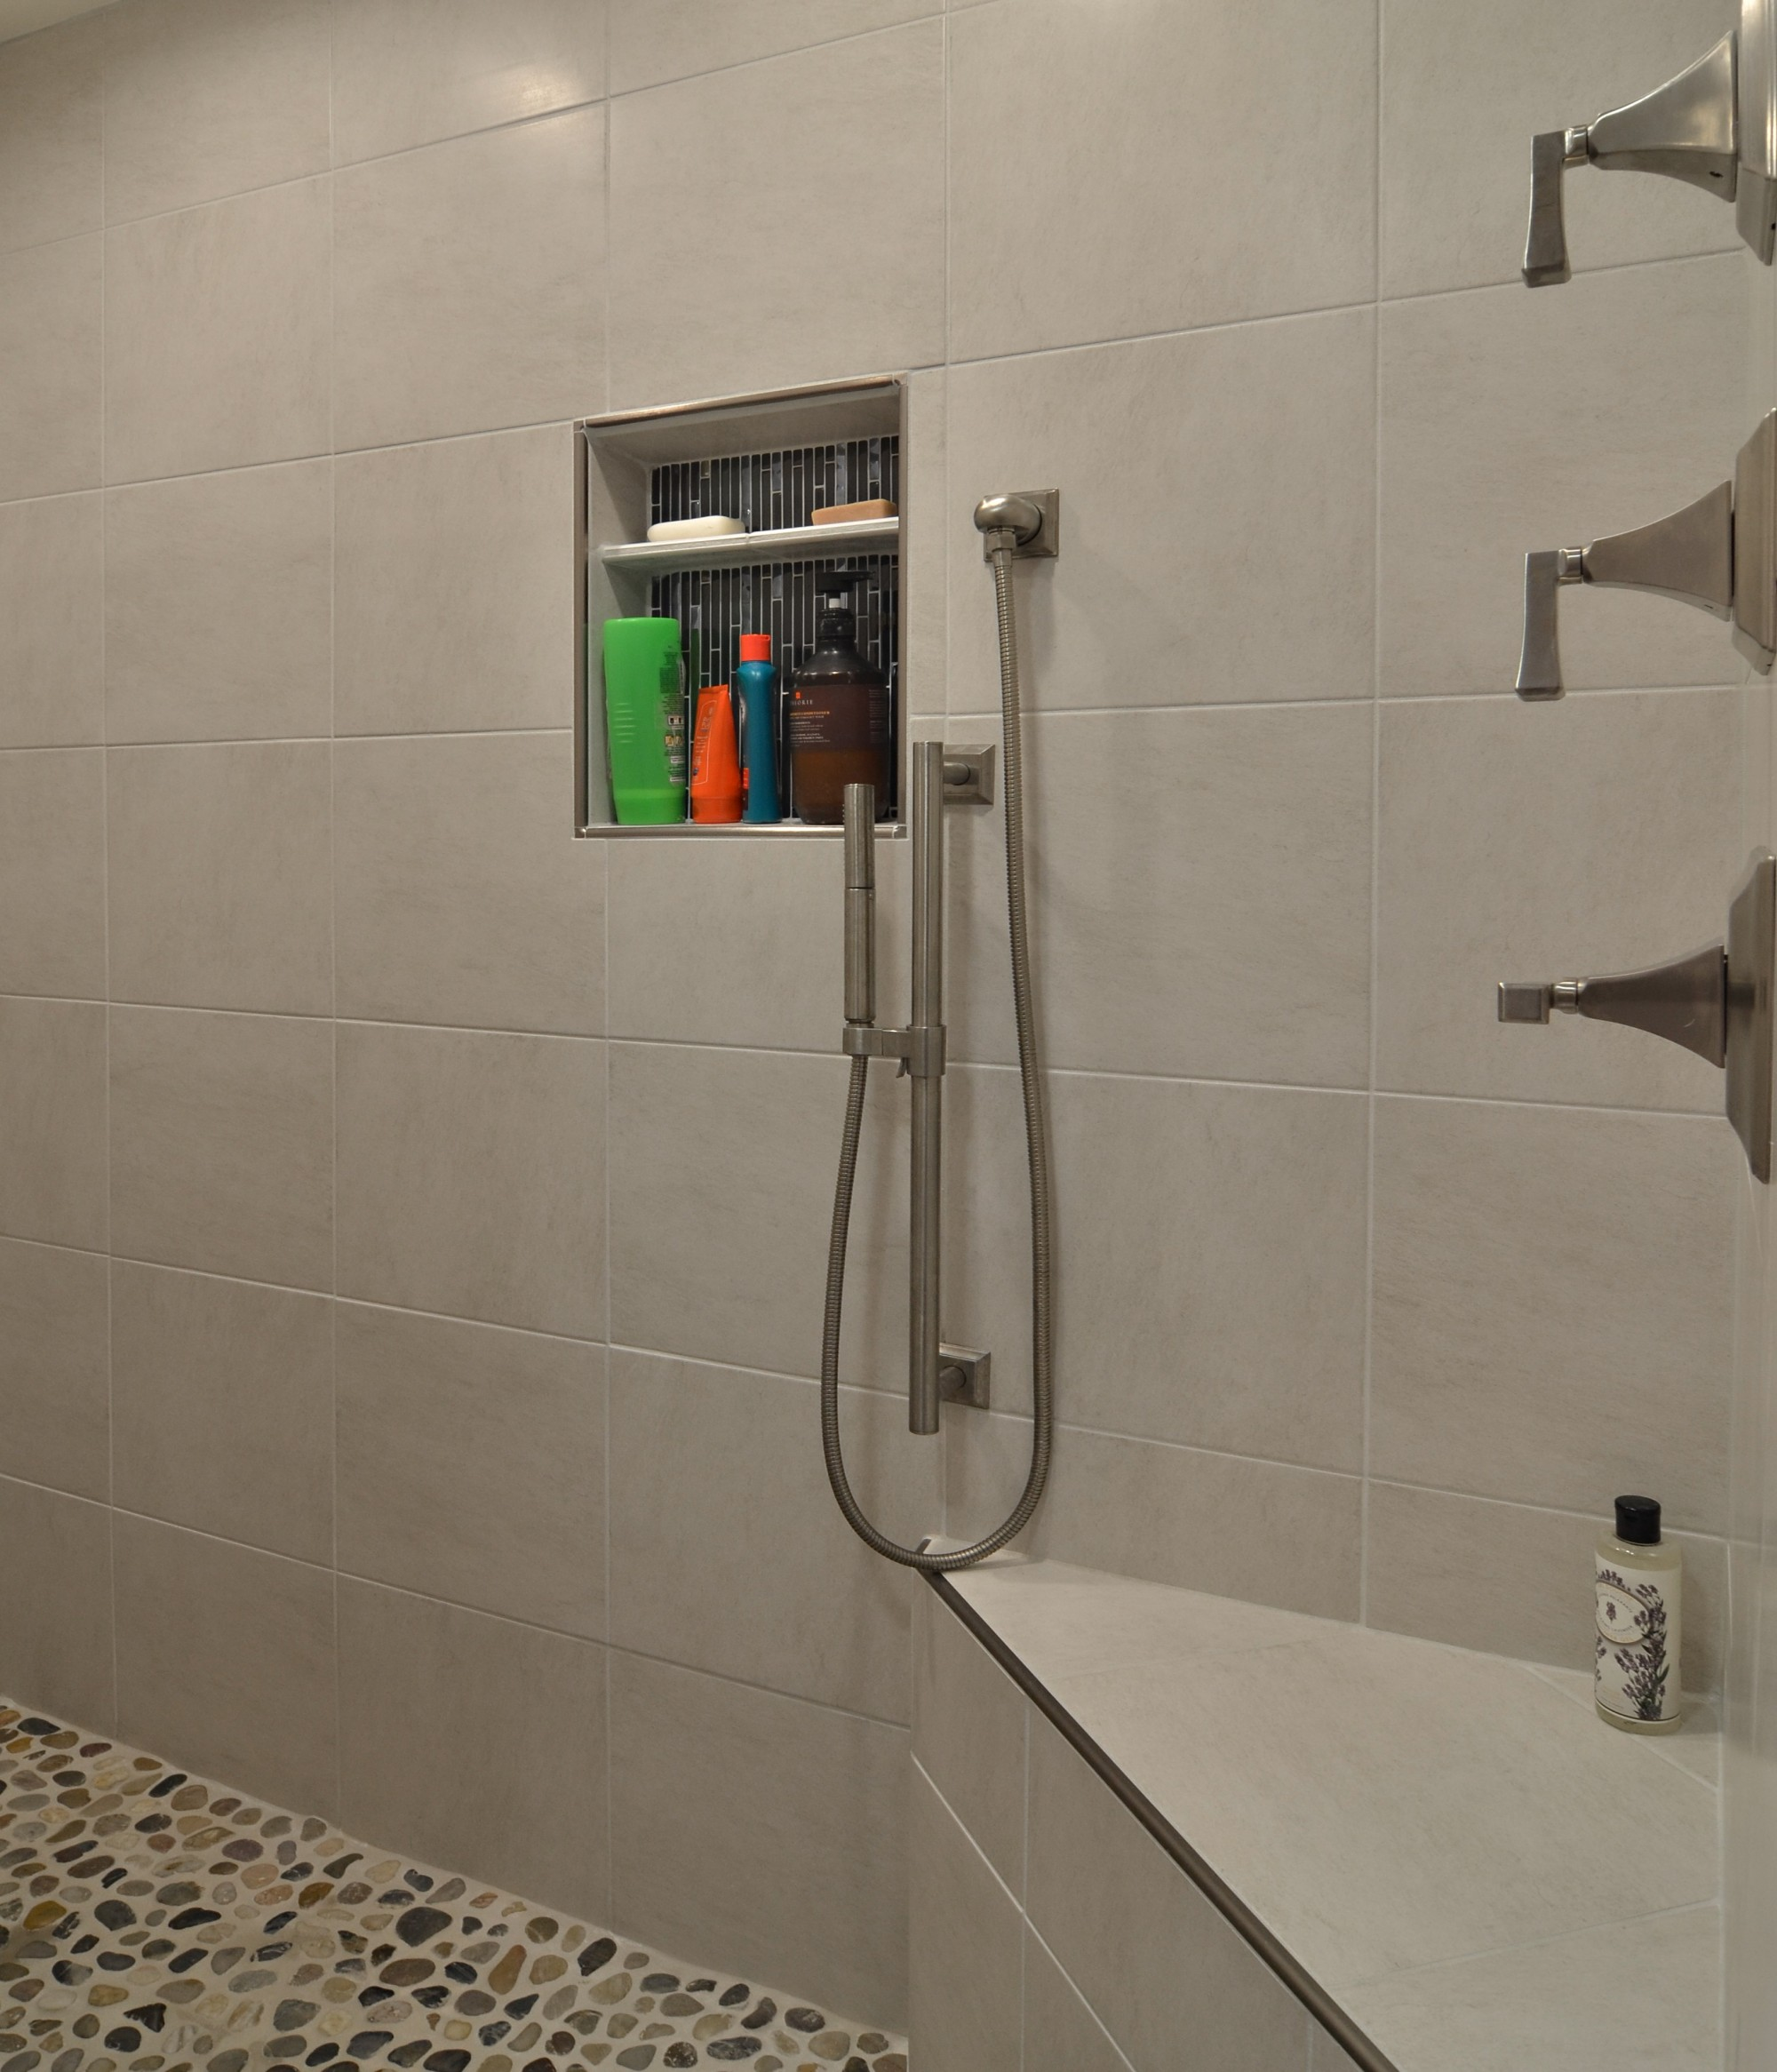 STORYBROOK SHOWER INTERIOR